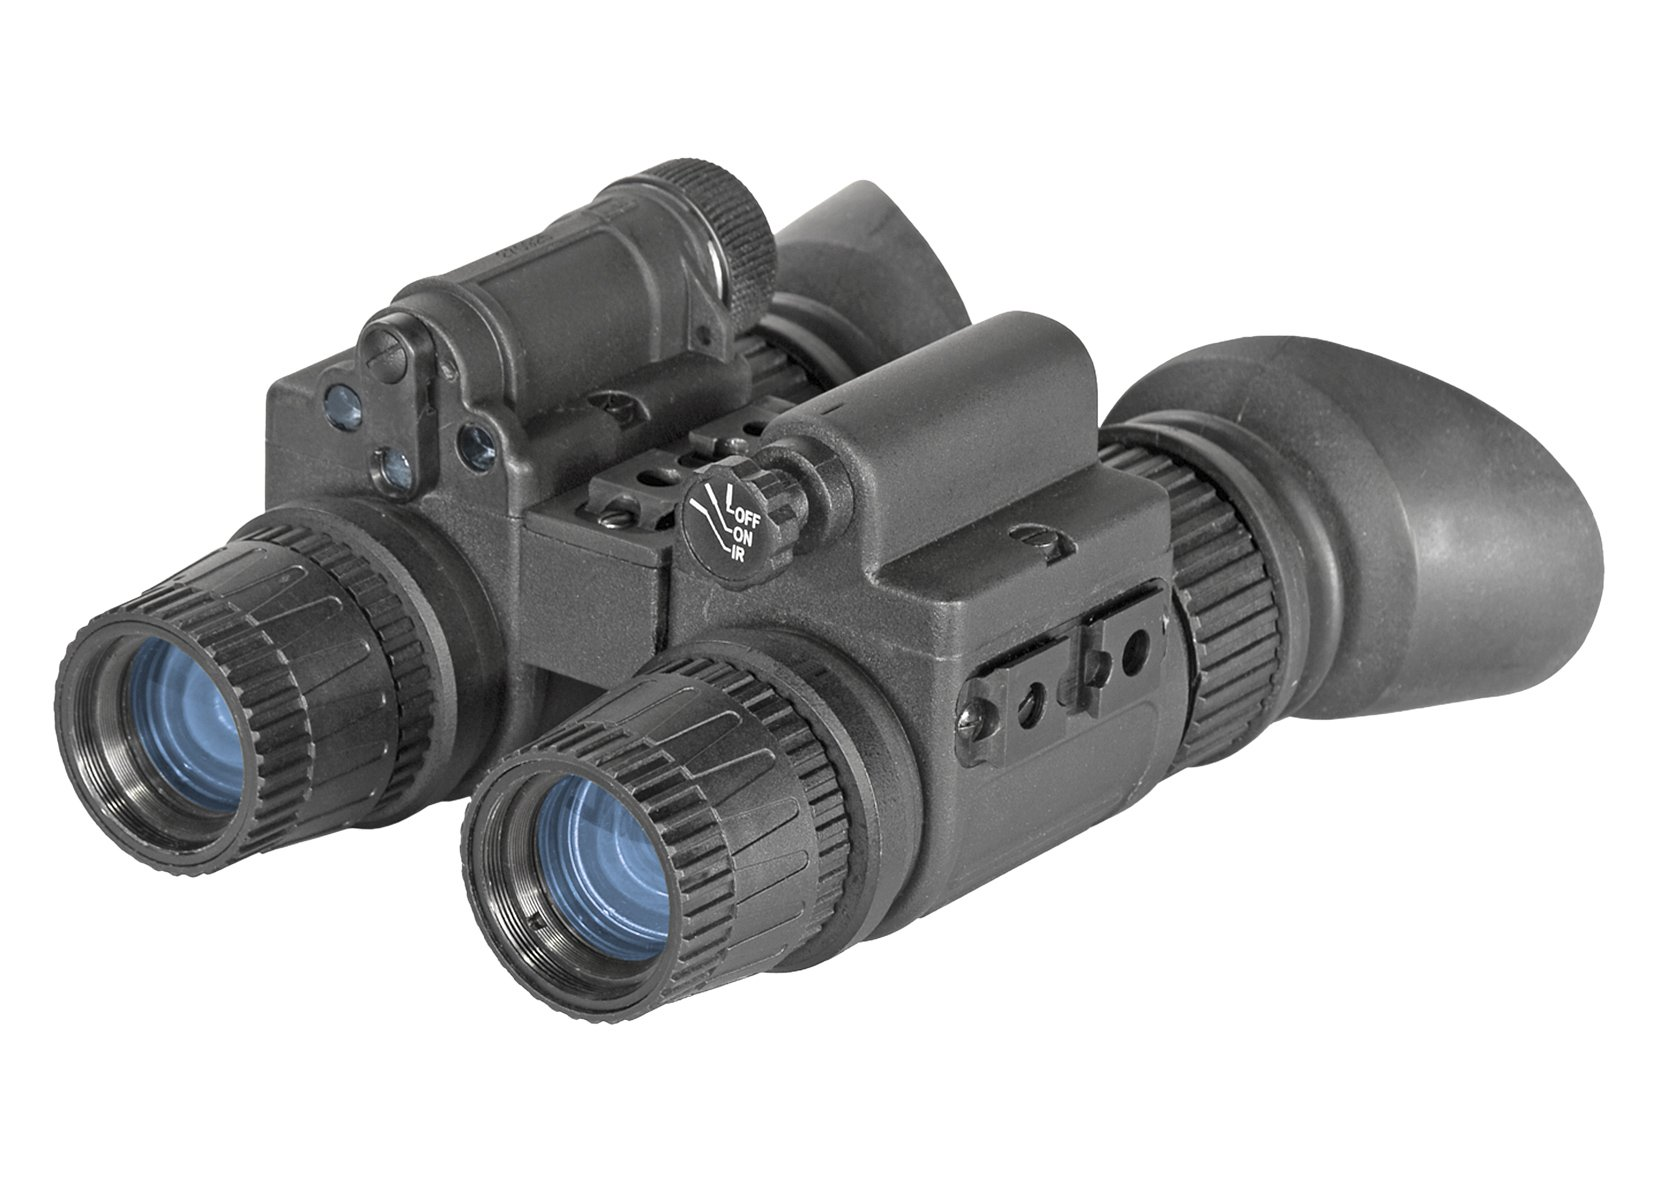 Armasight N-15 3P - Compact Dual Tube Night Vision Goggle Gen 3; High-Performance Thin-Filmed Auto-Gated IIT